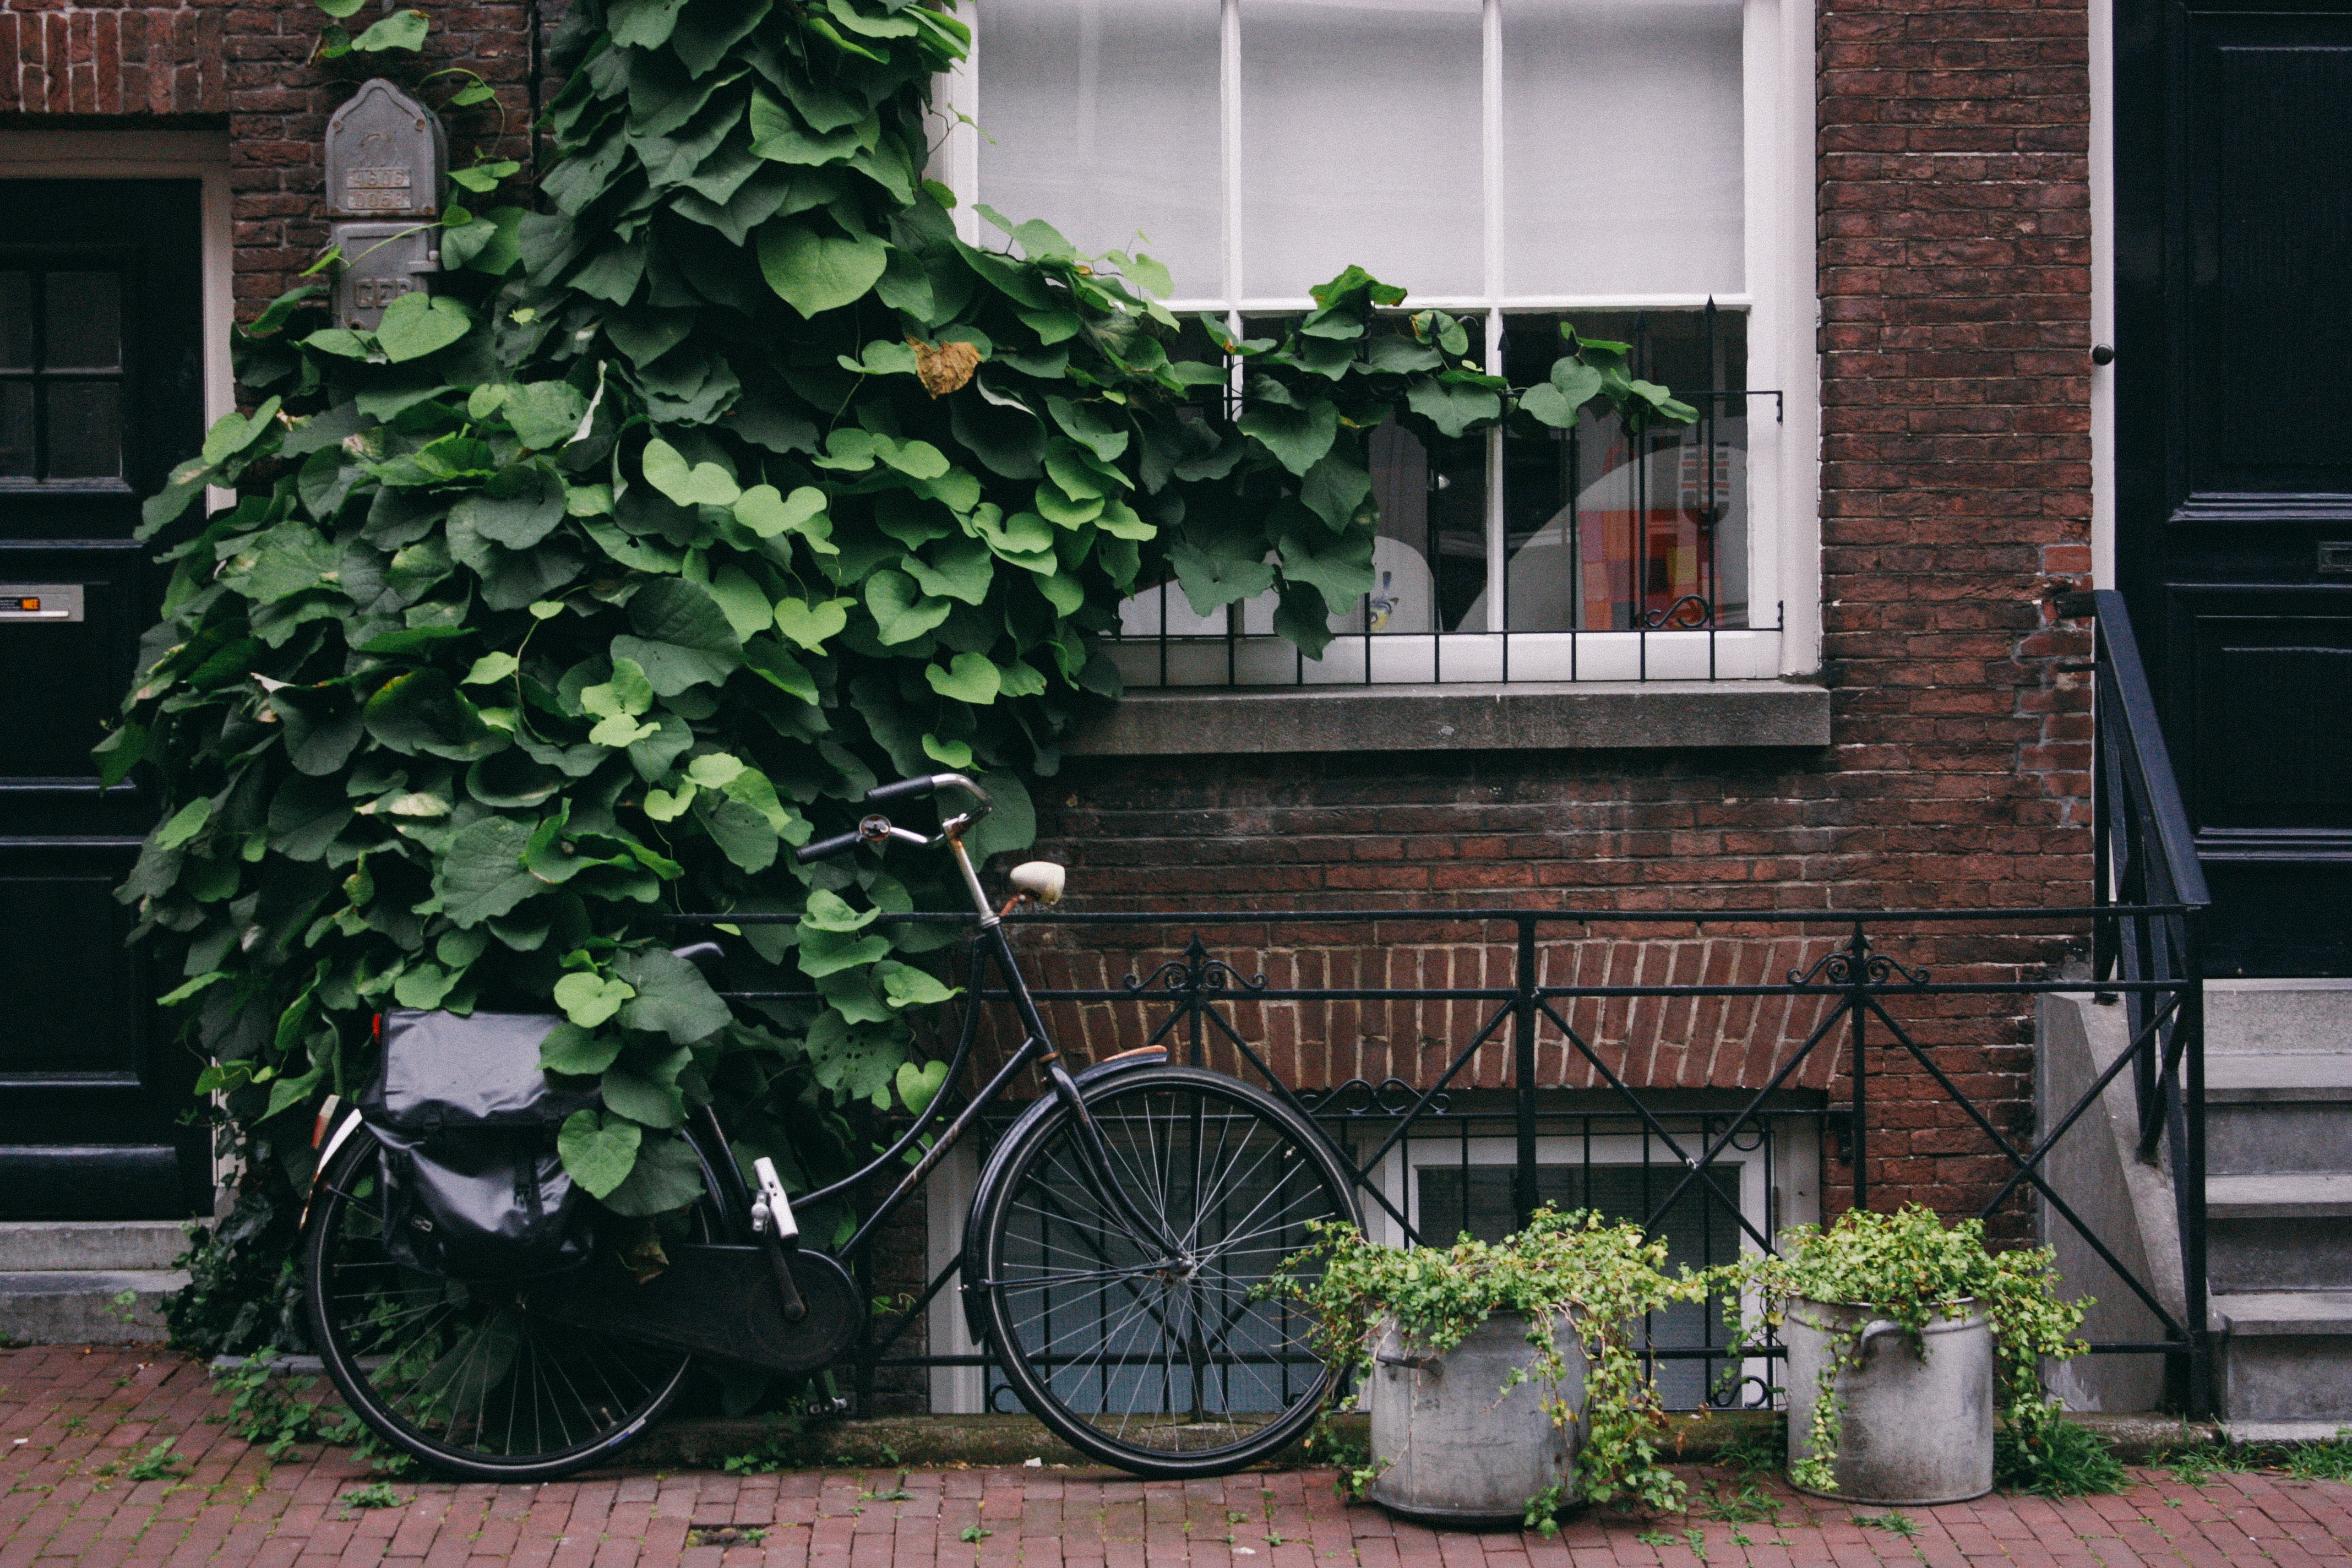 Bike covered in green leaves sits in front of brick building and window beside two plants